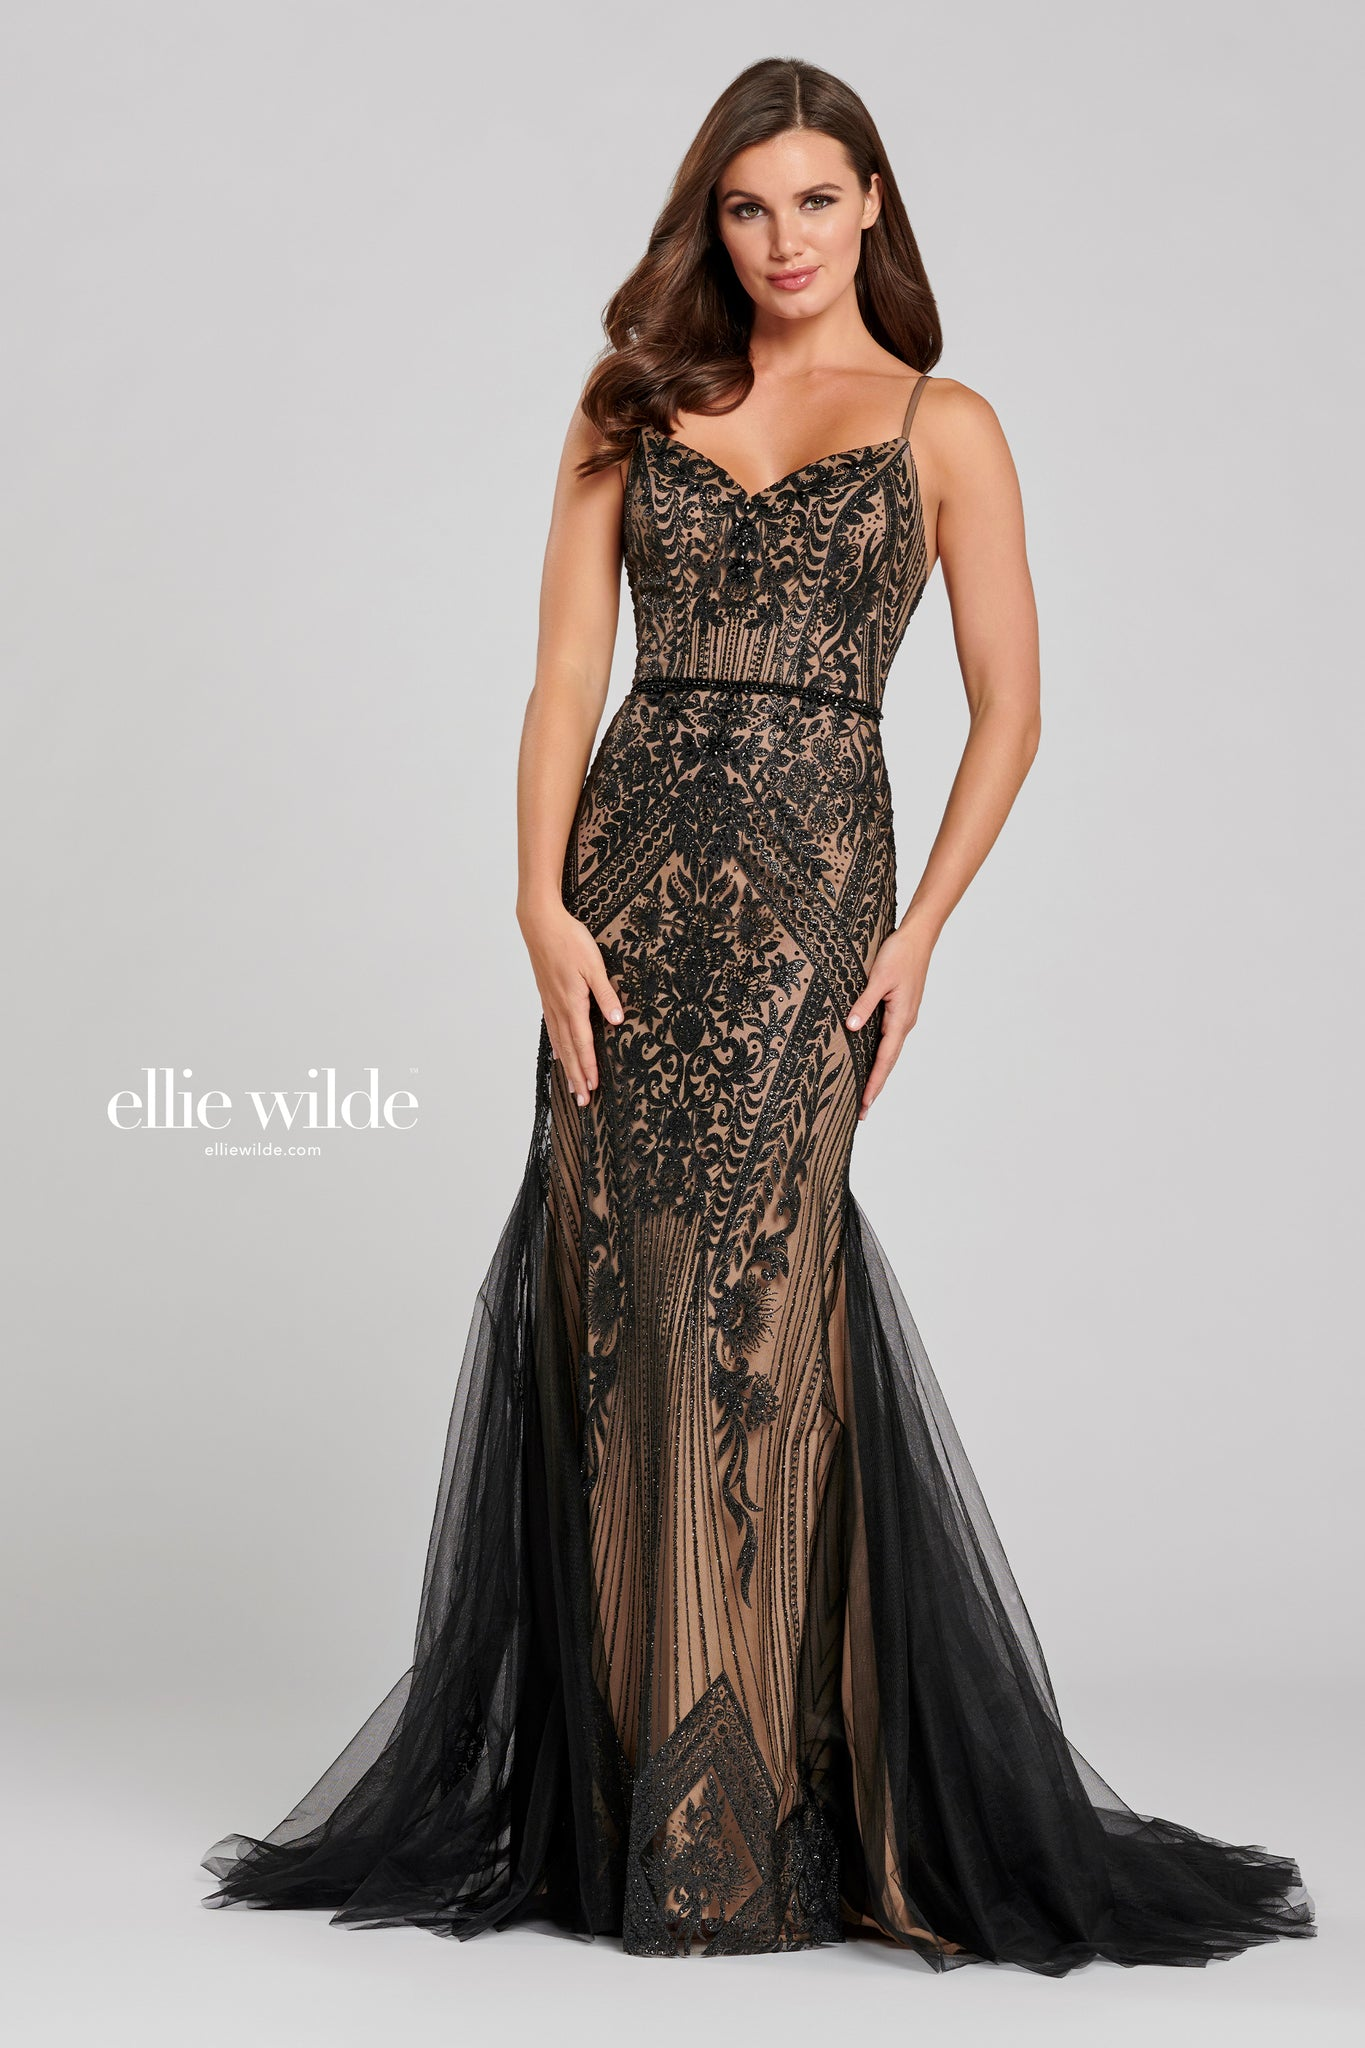 Ellie Wilde Black Chiffon Gown